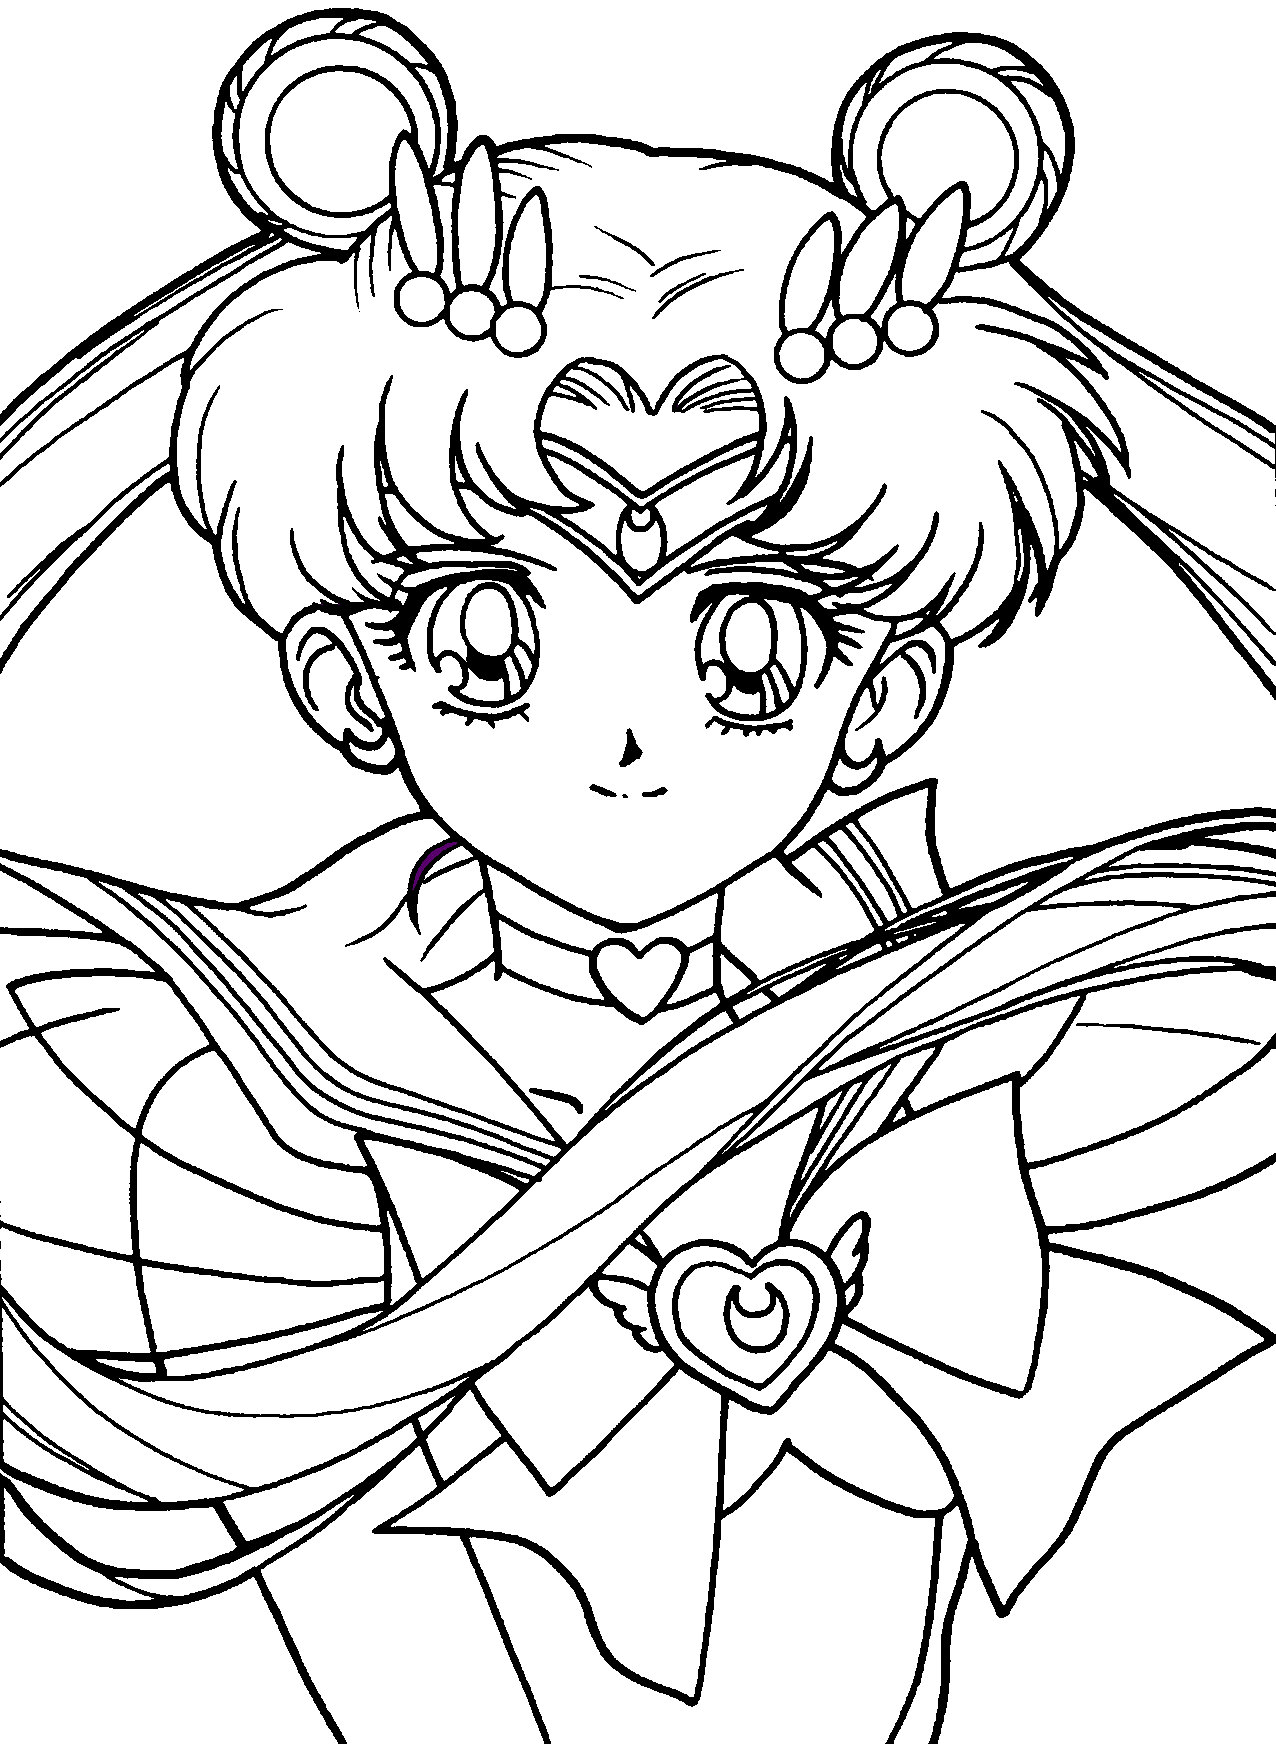 Sailor moon by foxyneko09 on deviantart for Sailor moon group coloring pages